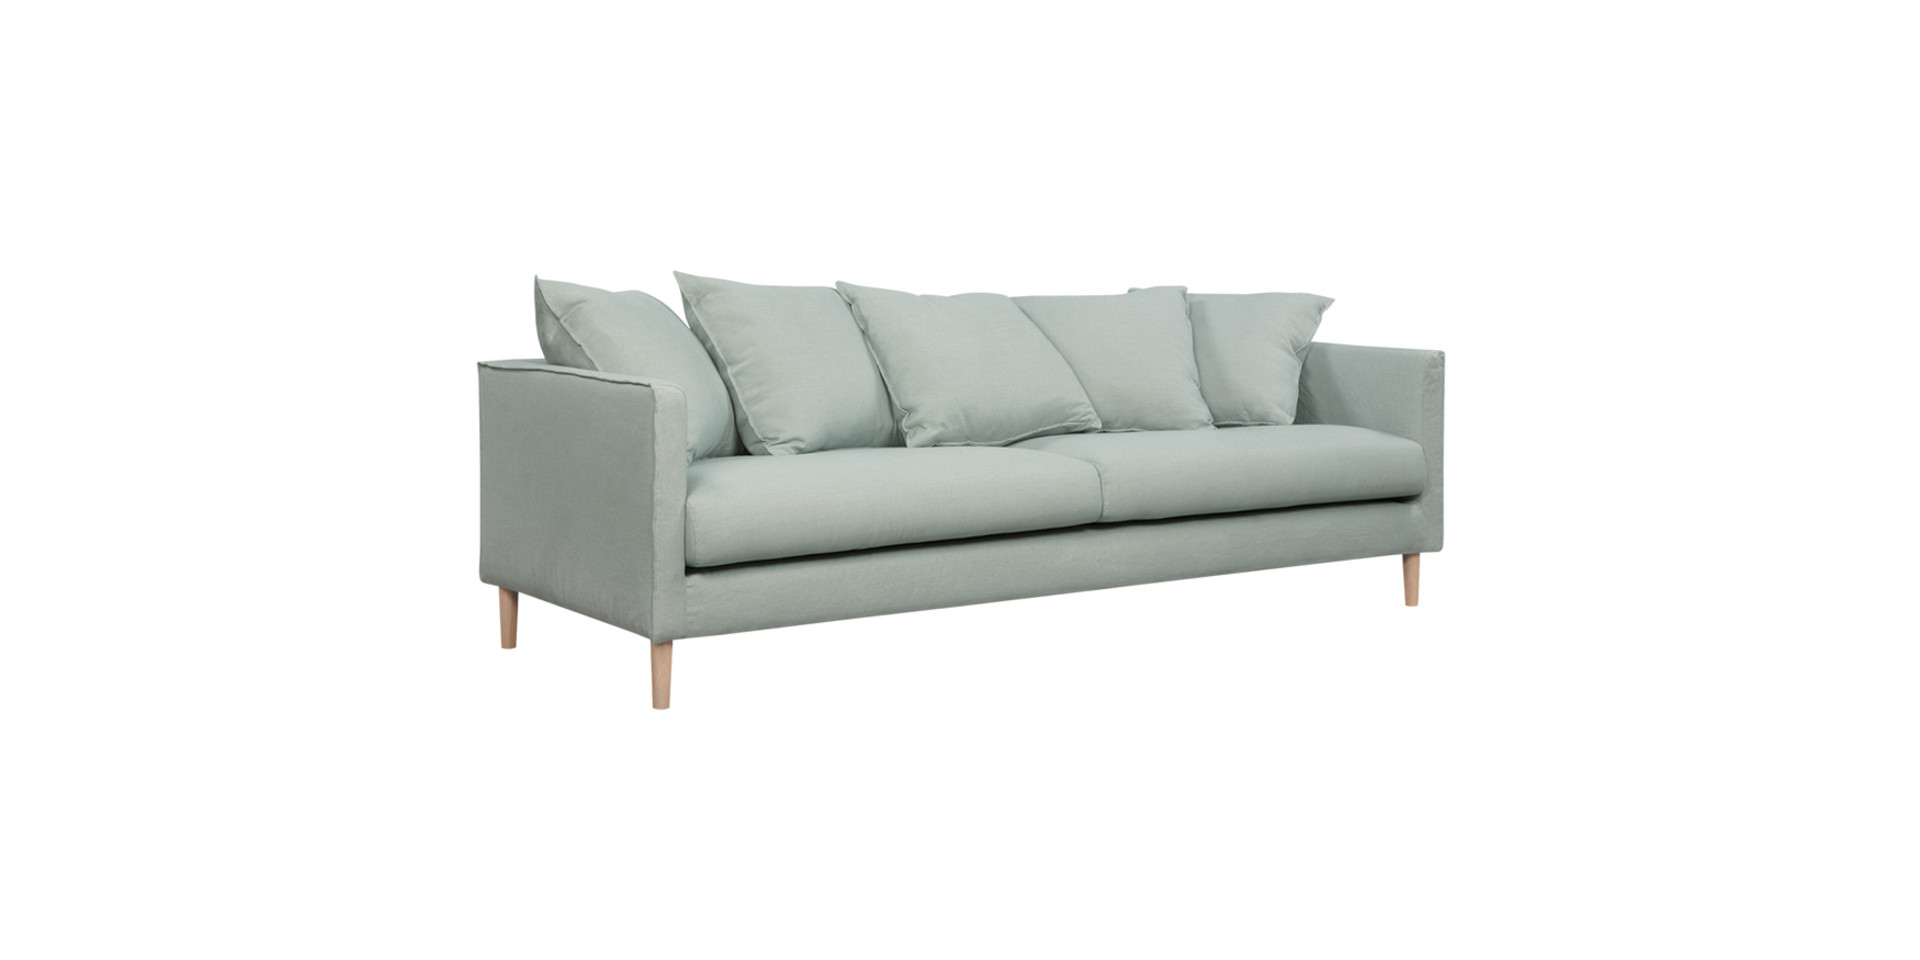 BIANCA_3seater_small_cushions_linenP823_6_spruce_2